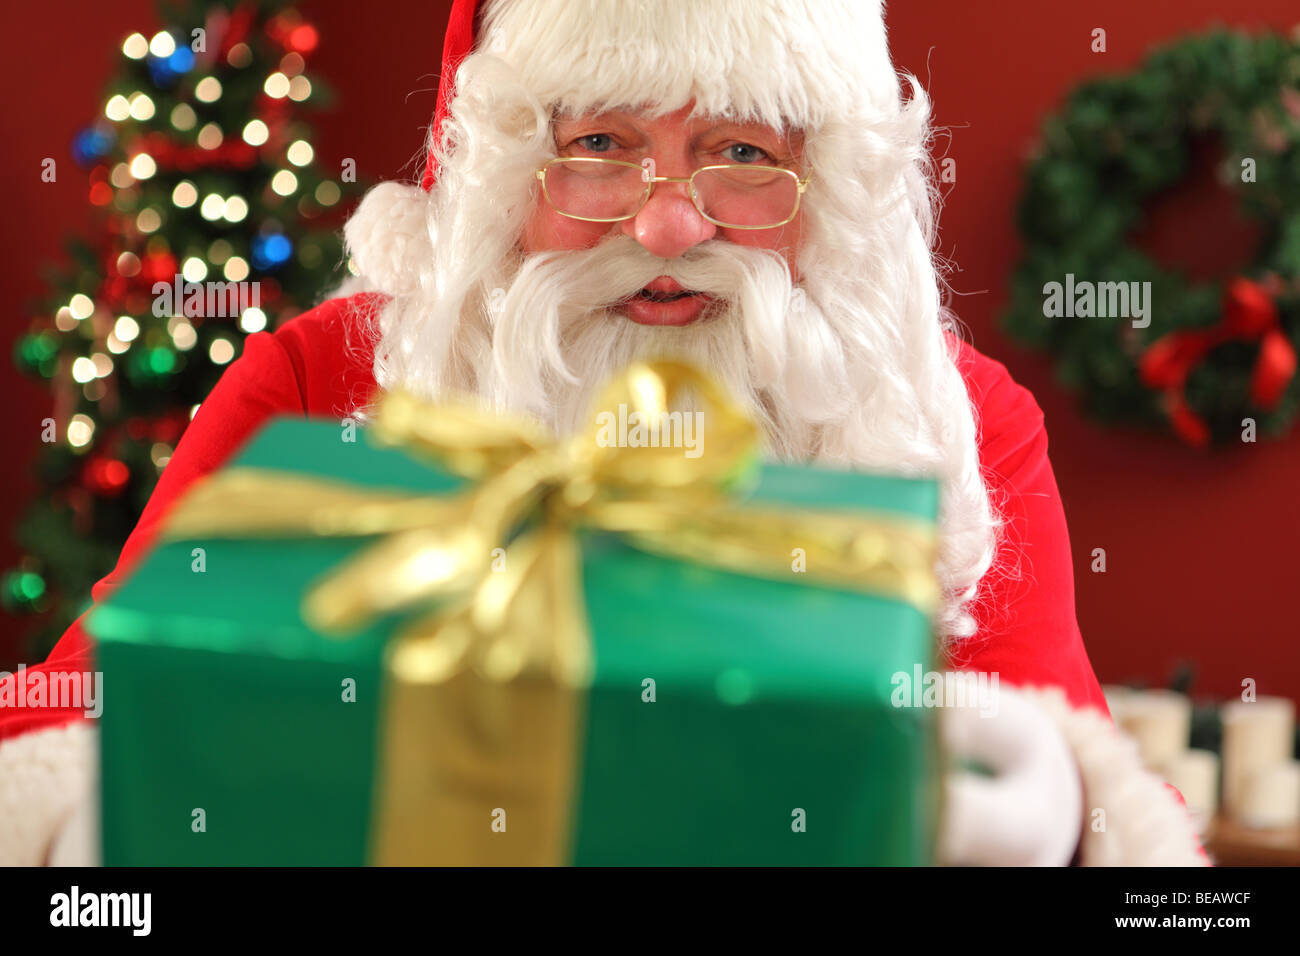 Santa Claus giving gift Photo Stock